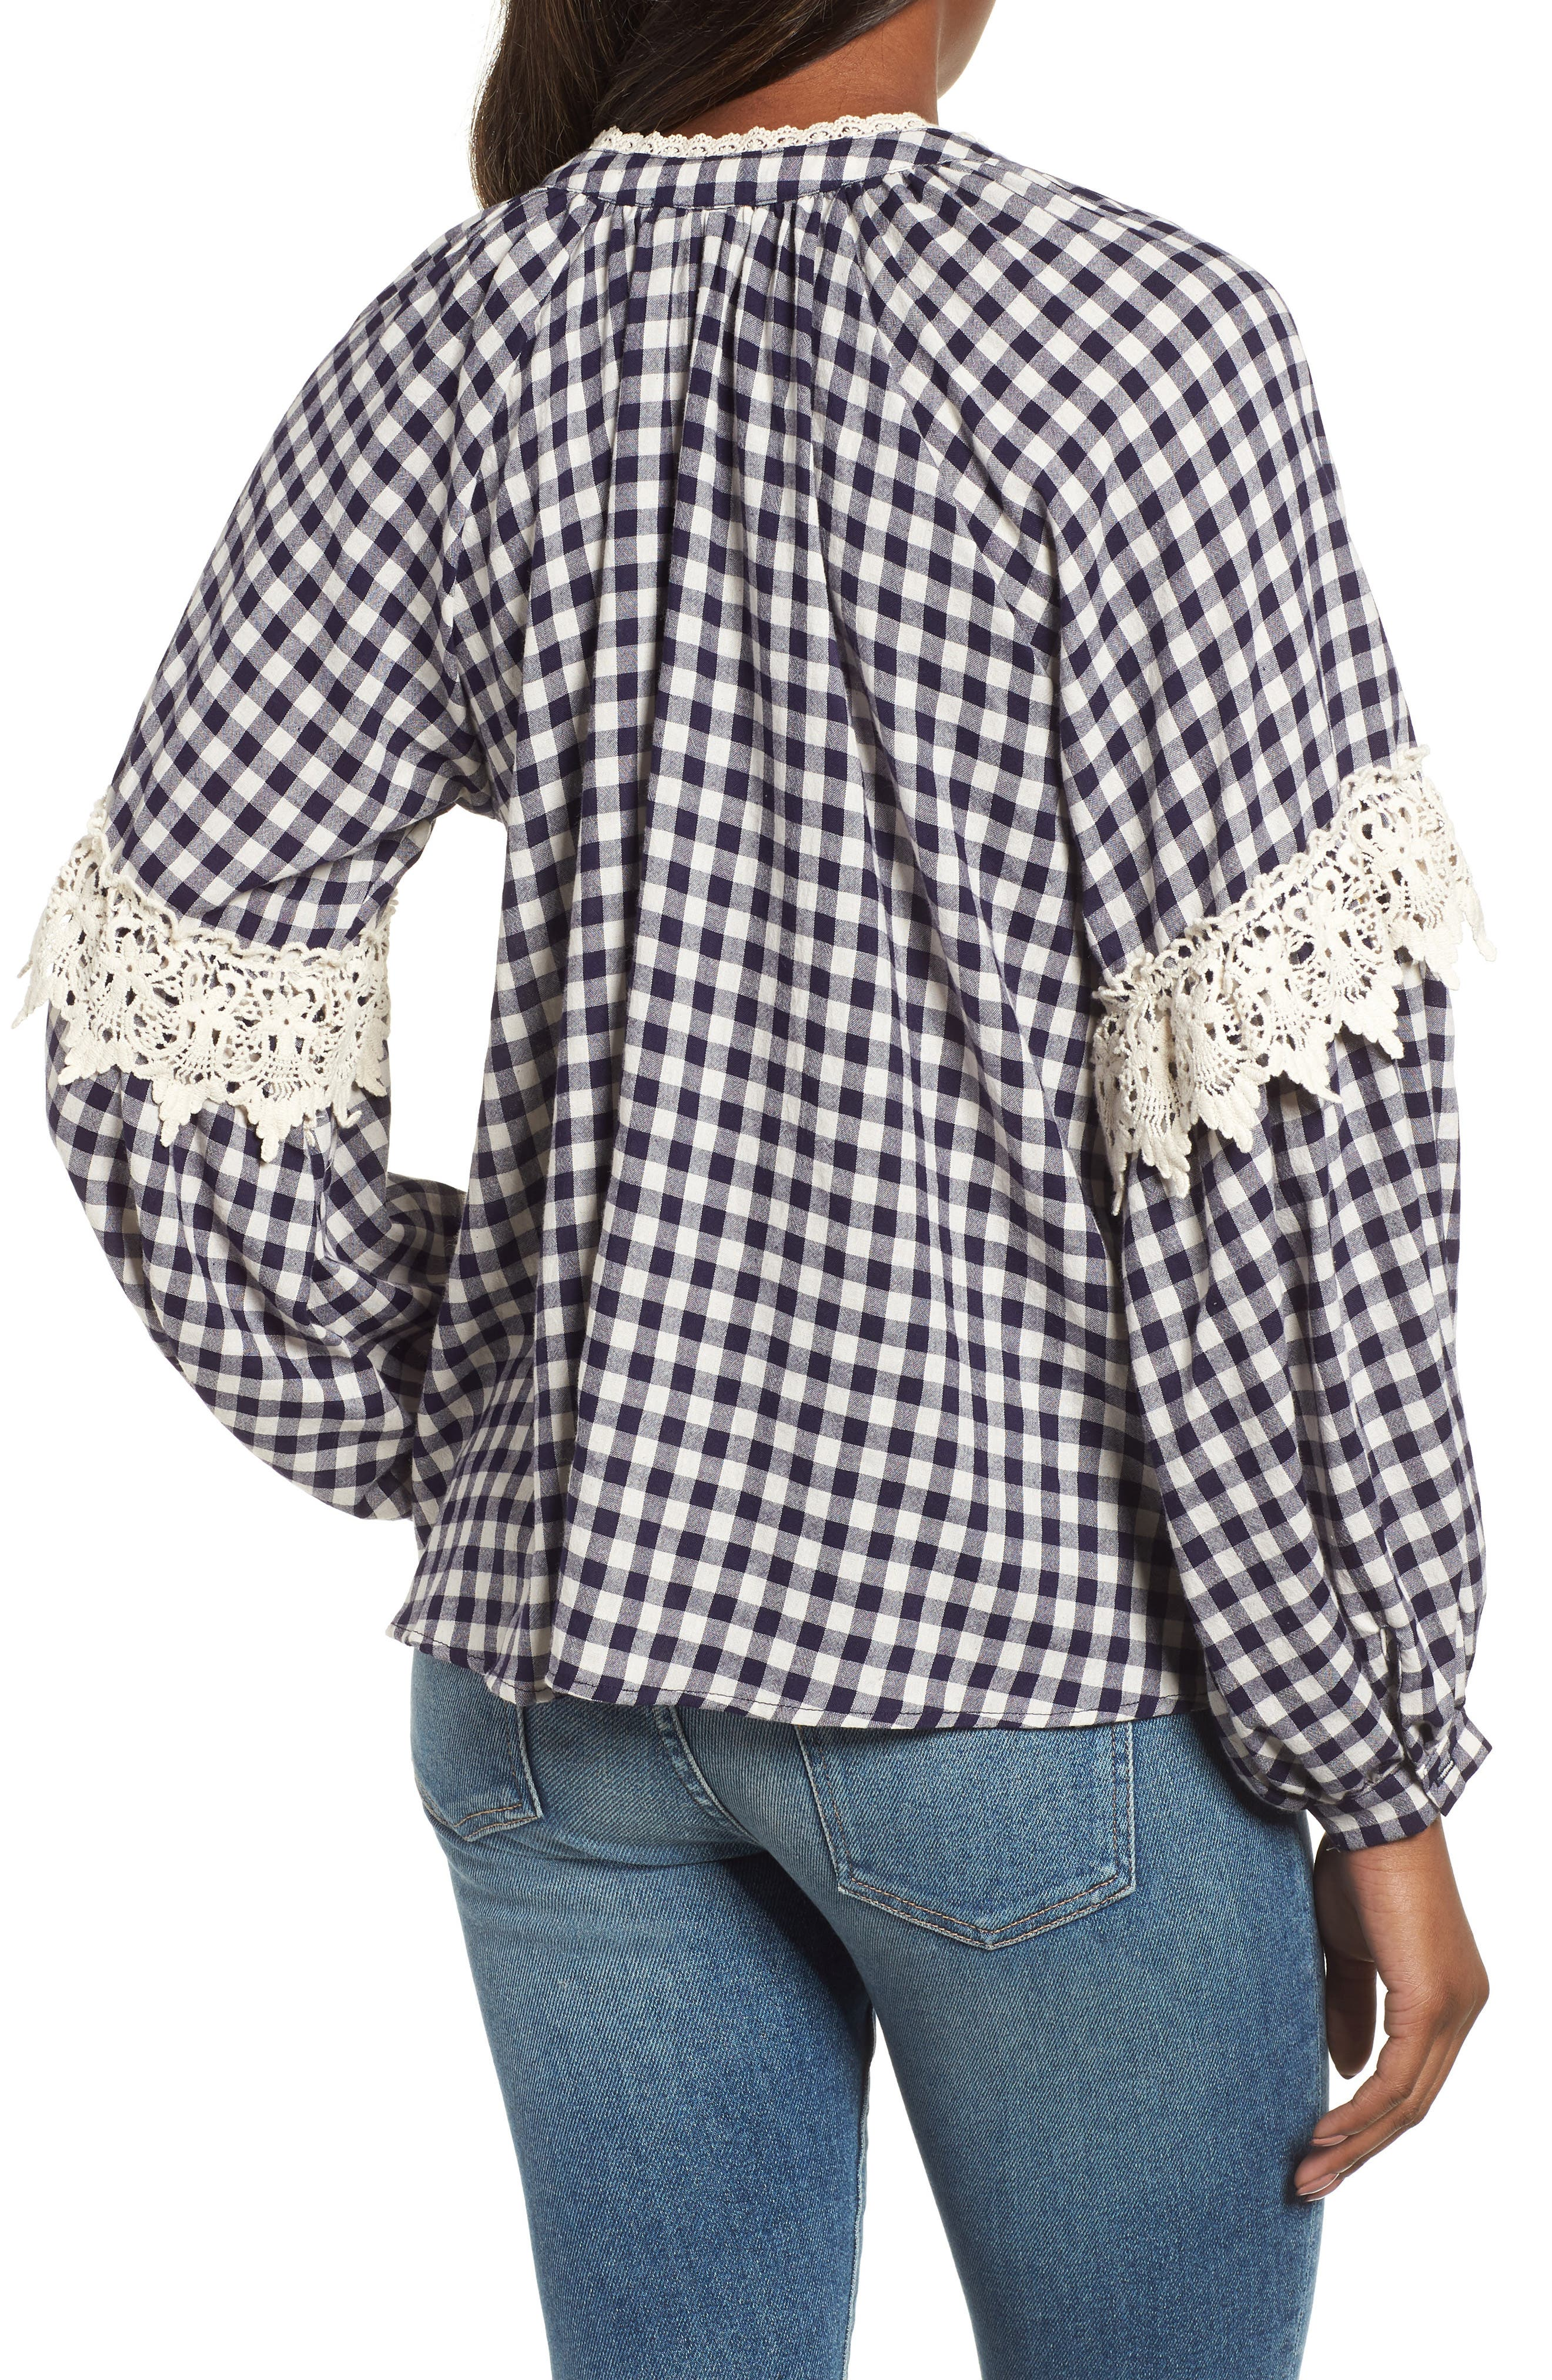 Gingham Check Peasant Top,                             Alternate thumbnail 2, color,                             Navy White Gingham